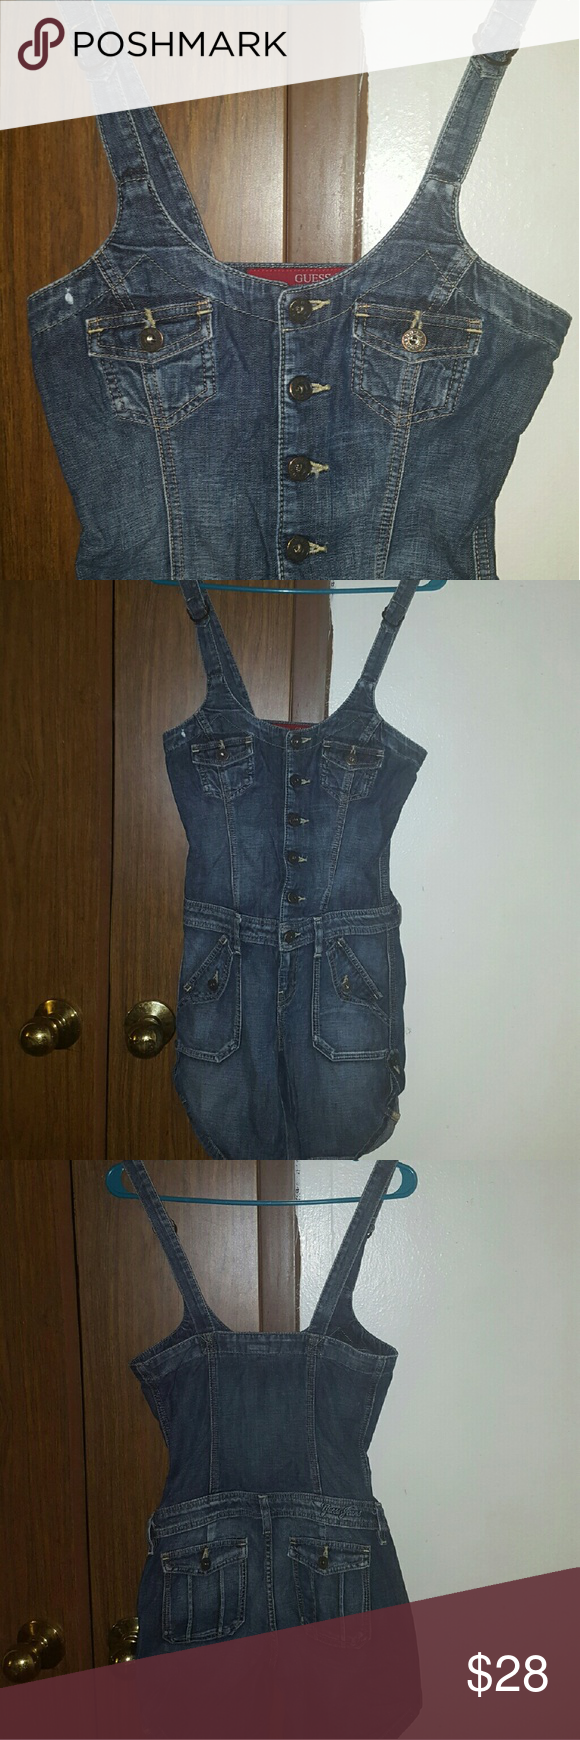 Like New Adorable Guess Jean Jumpsuit Xs Adorable Guess Jean Jumpsuit Size Xs. Has 2 pokets on butt 2 by waist and 2 mini pokets on top. All pockets are real! You  can leave down or cinch up with button by thigh like shown in picture.  Looks Amazing on! Worn twice! Excellent Condition!   Be sure to check out my other items that are up for sale. You wont be disappointed! Guess Pants Jumpsuits & Rompers